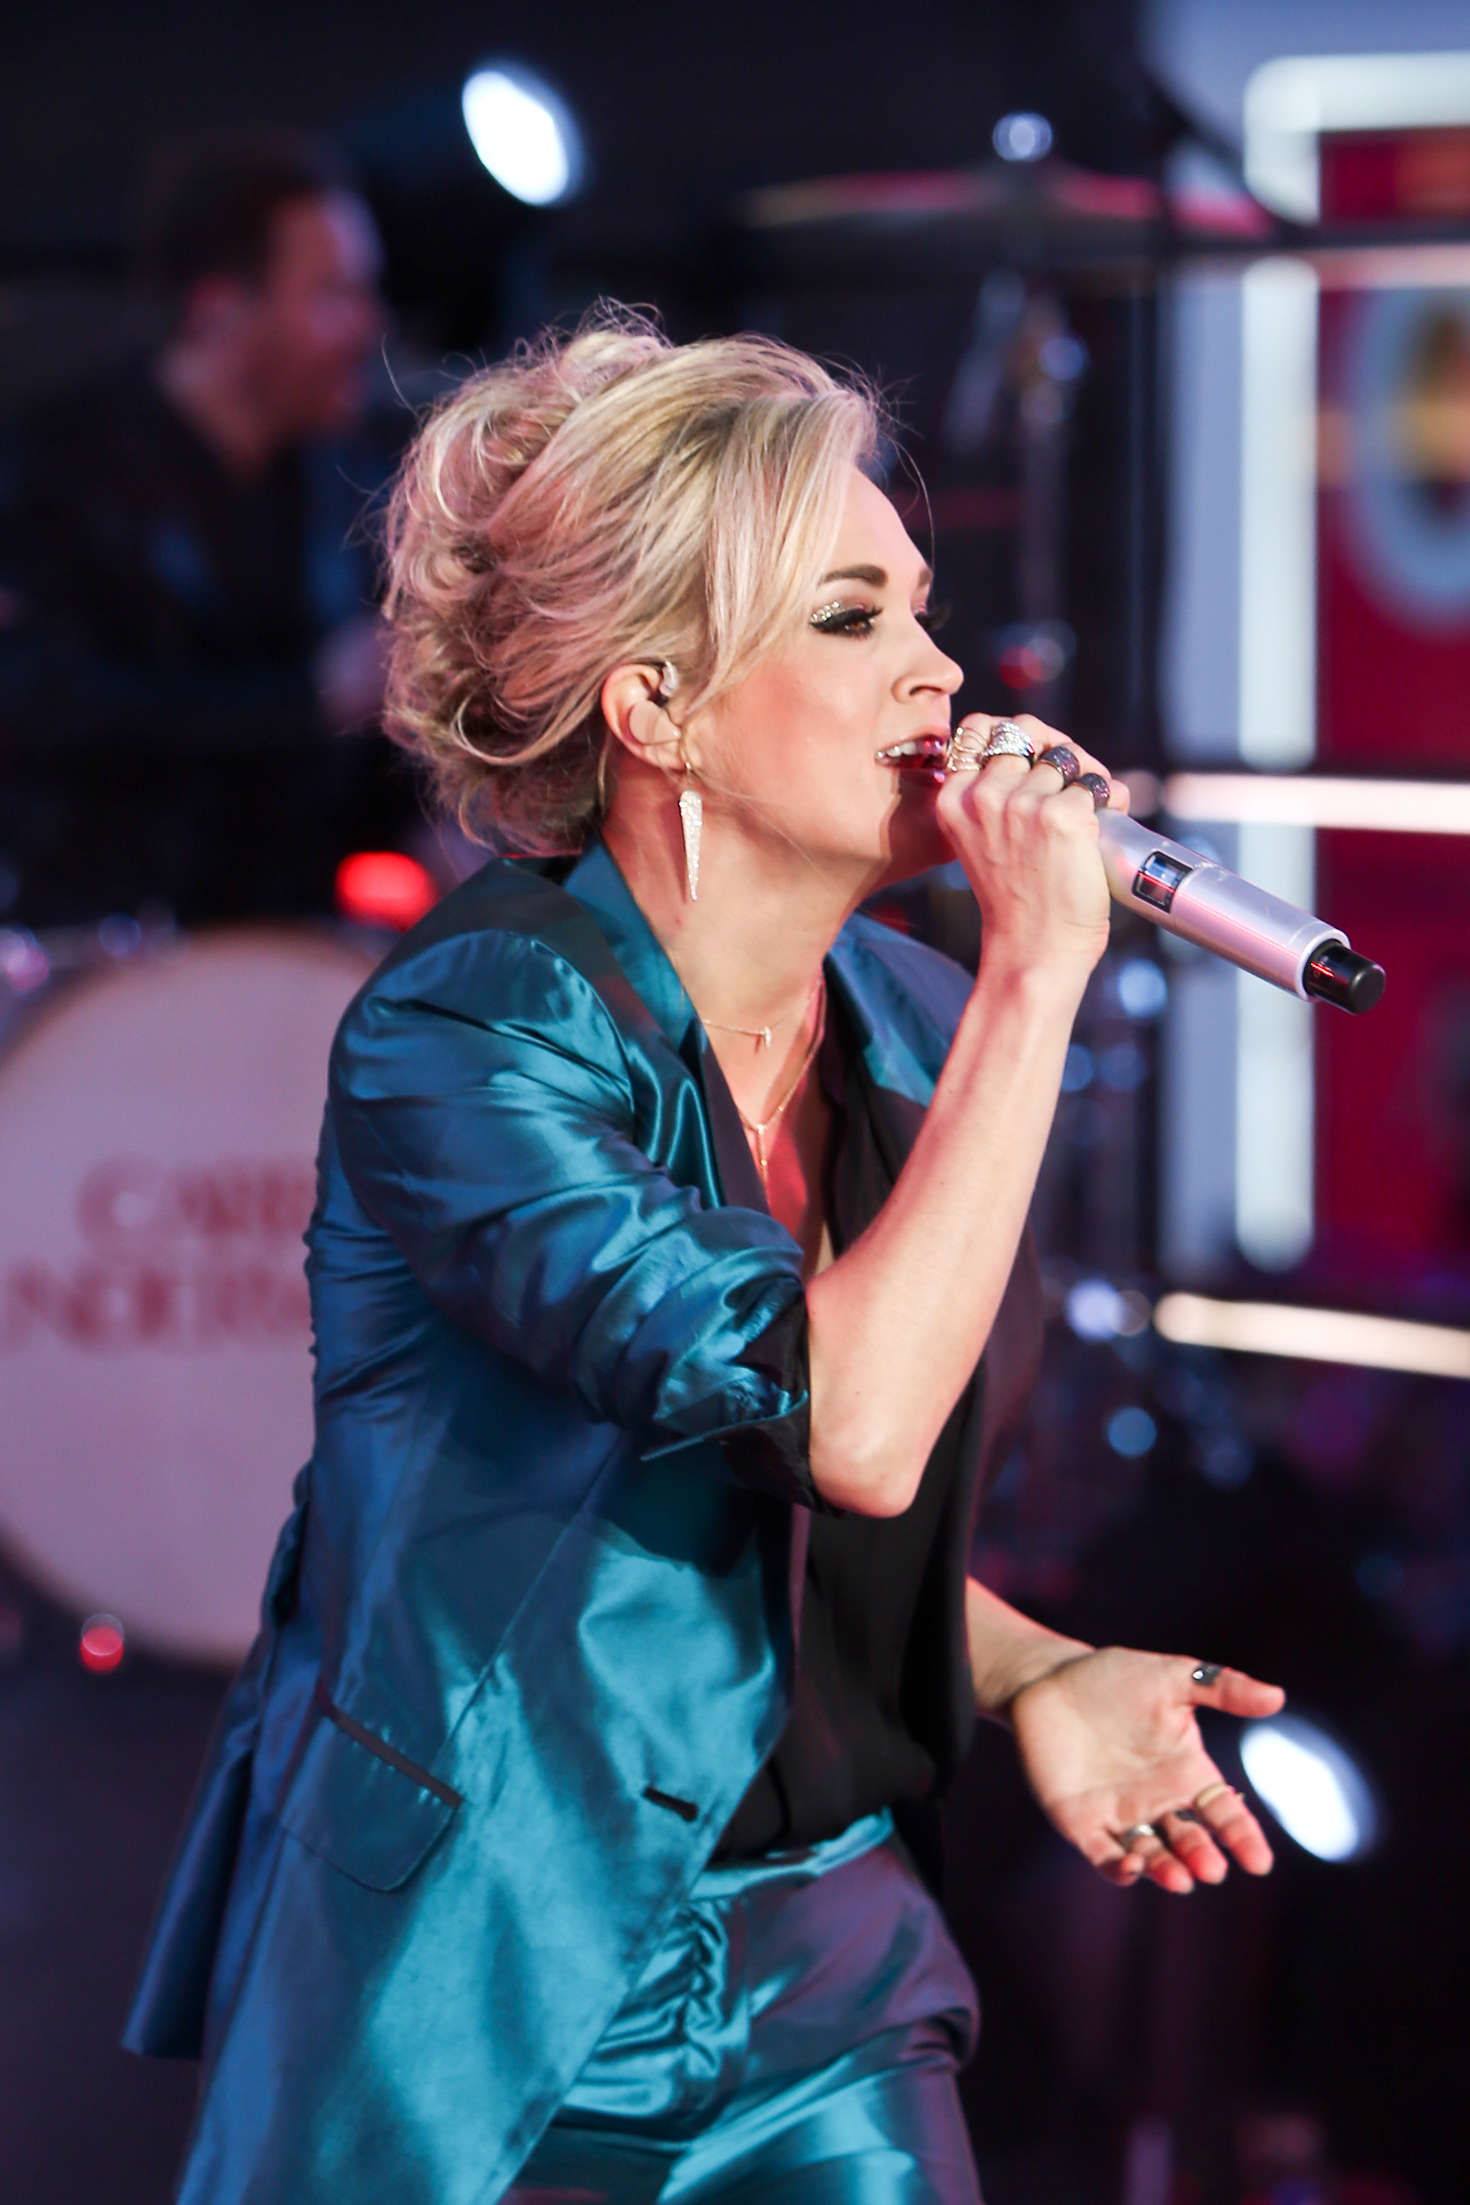 Carrie underwood performs at dick clarks pics 439